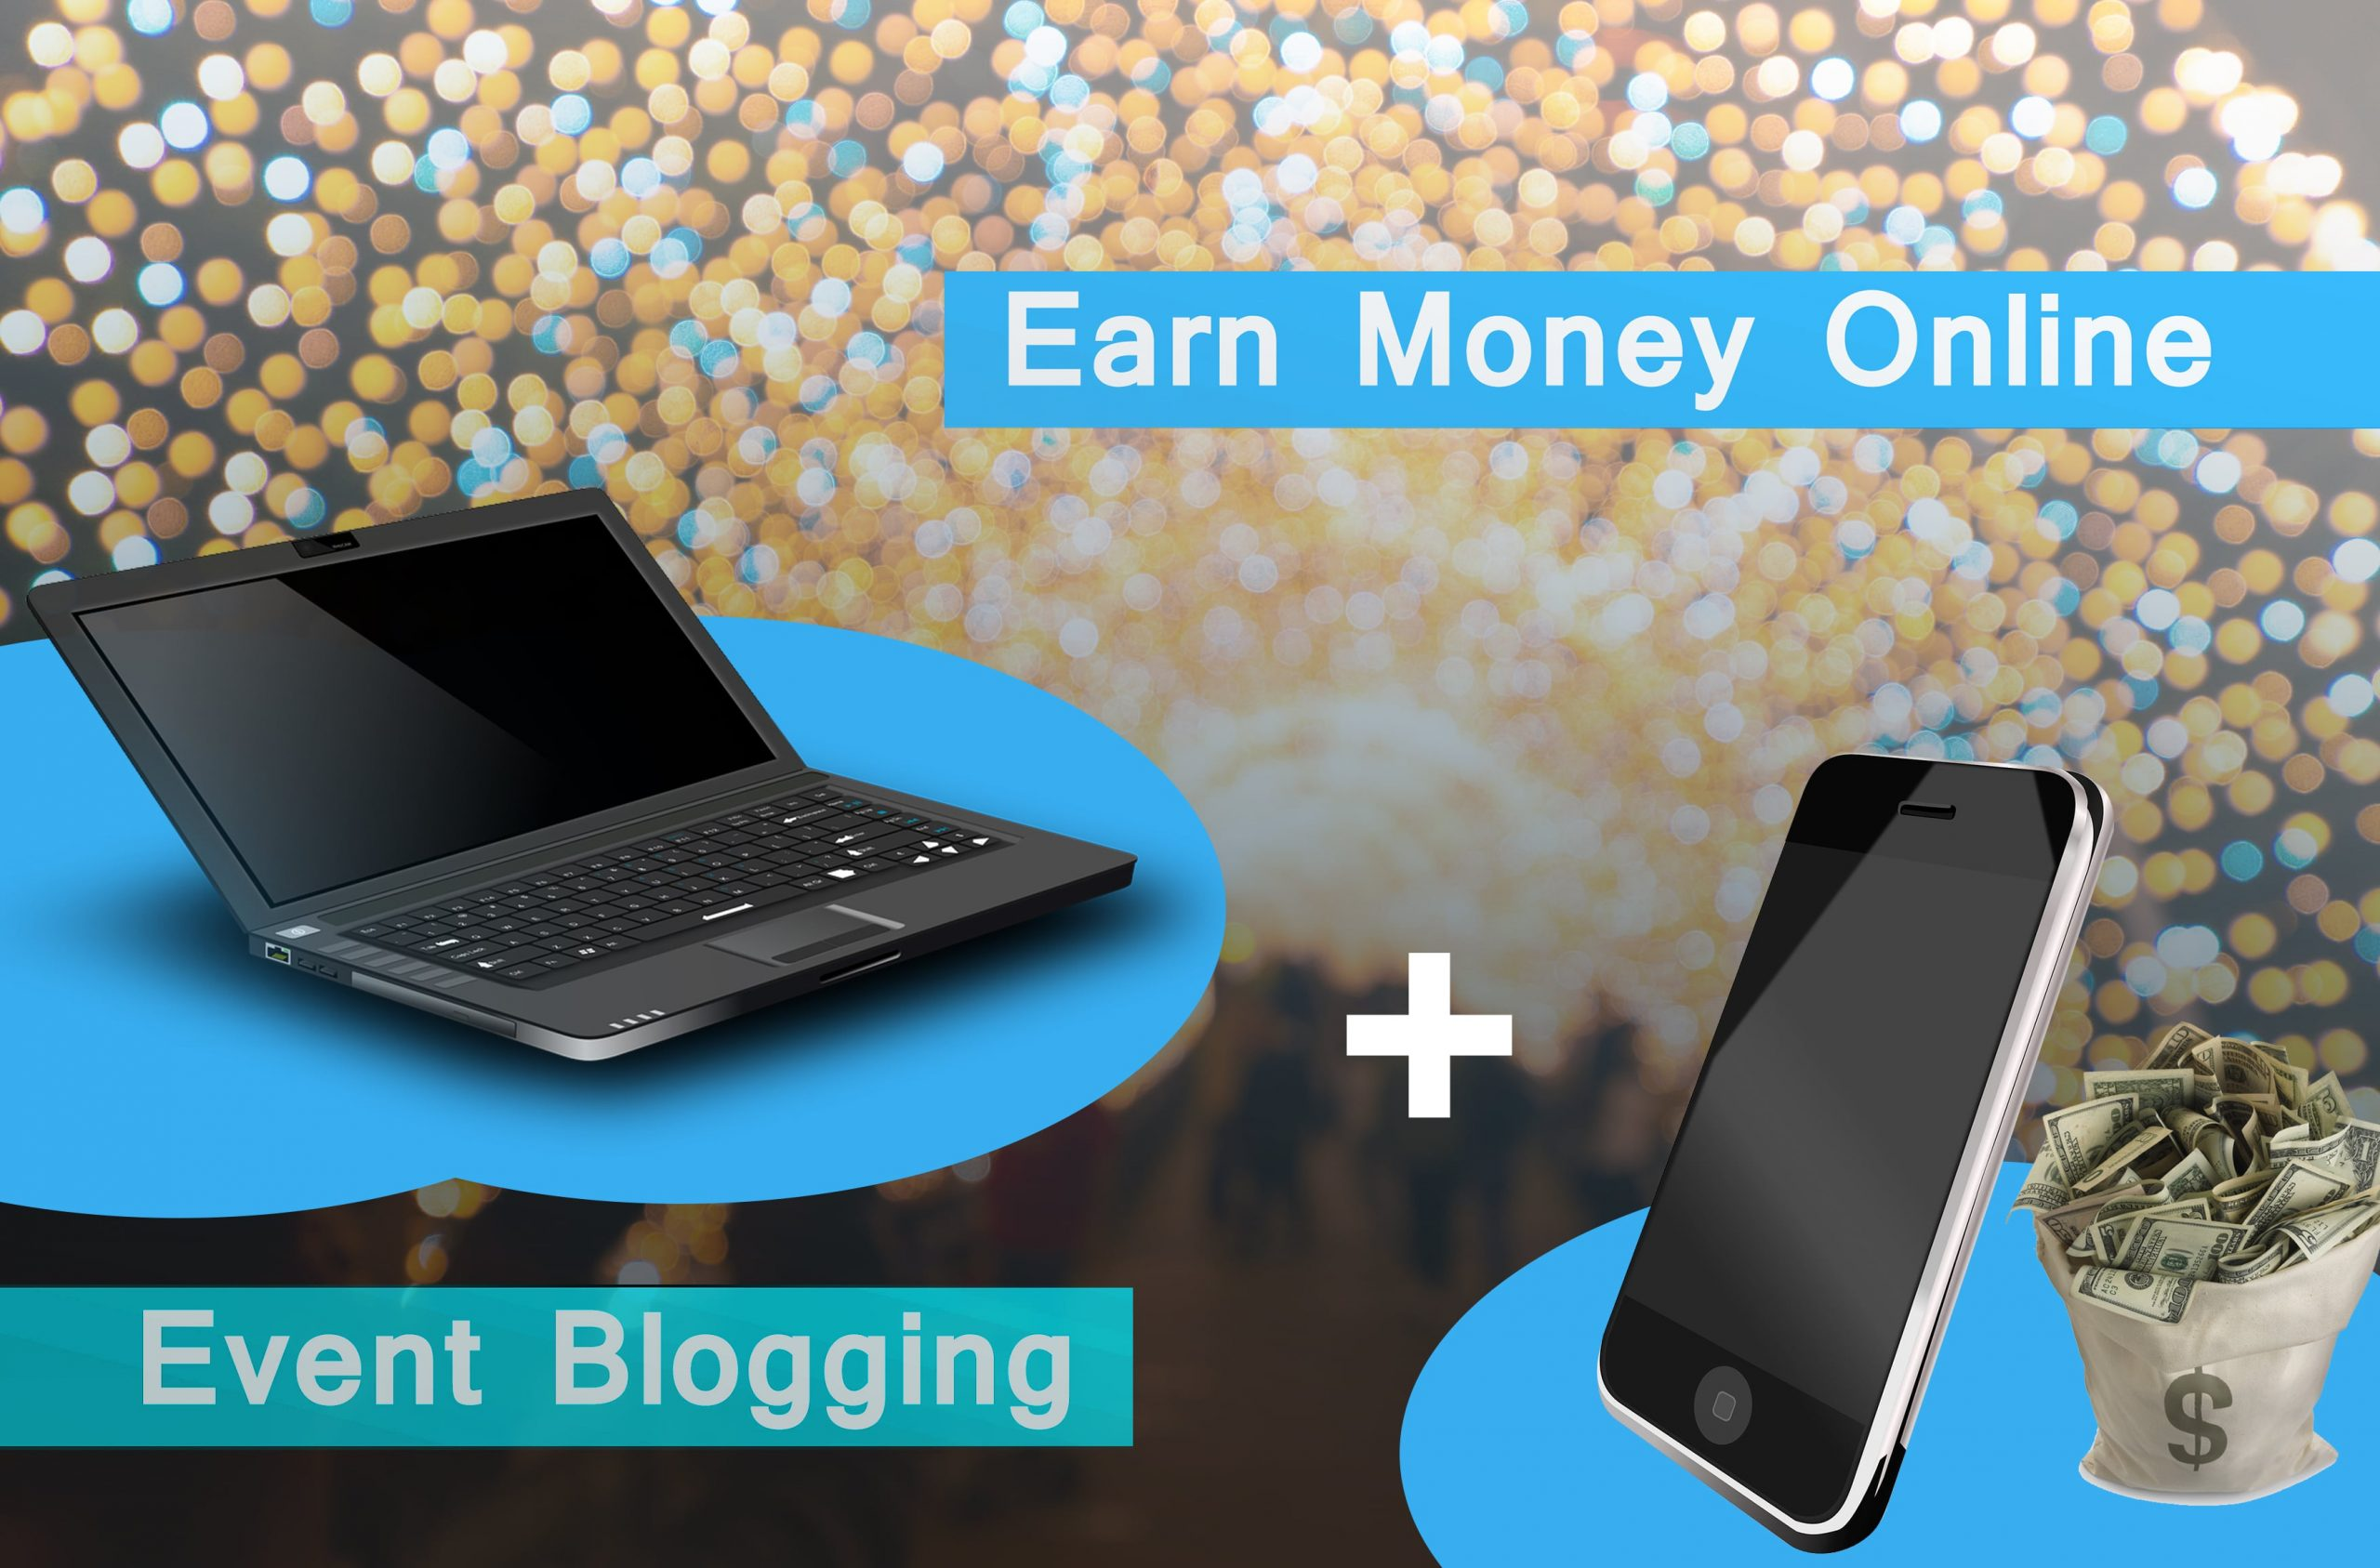 earn money online by event blogging